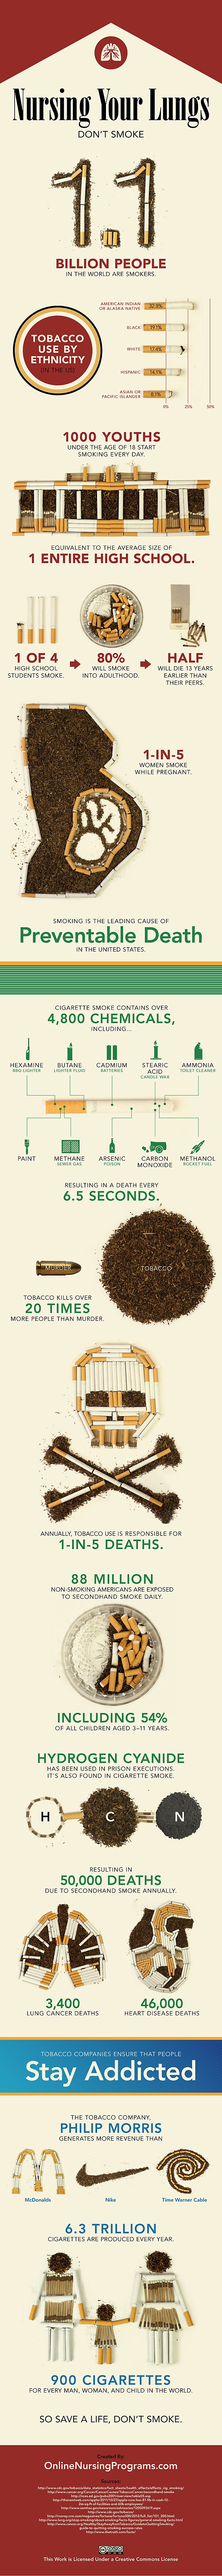 This Just In: Cigarette Smoking is Really Bad For You (Infographic) : Discovery Channel